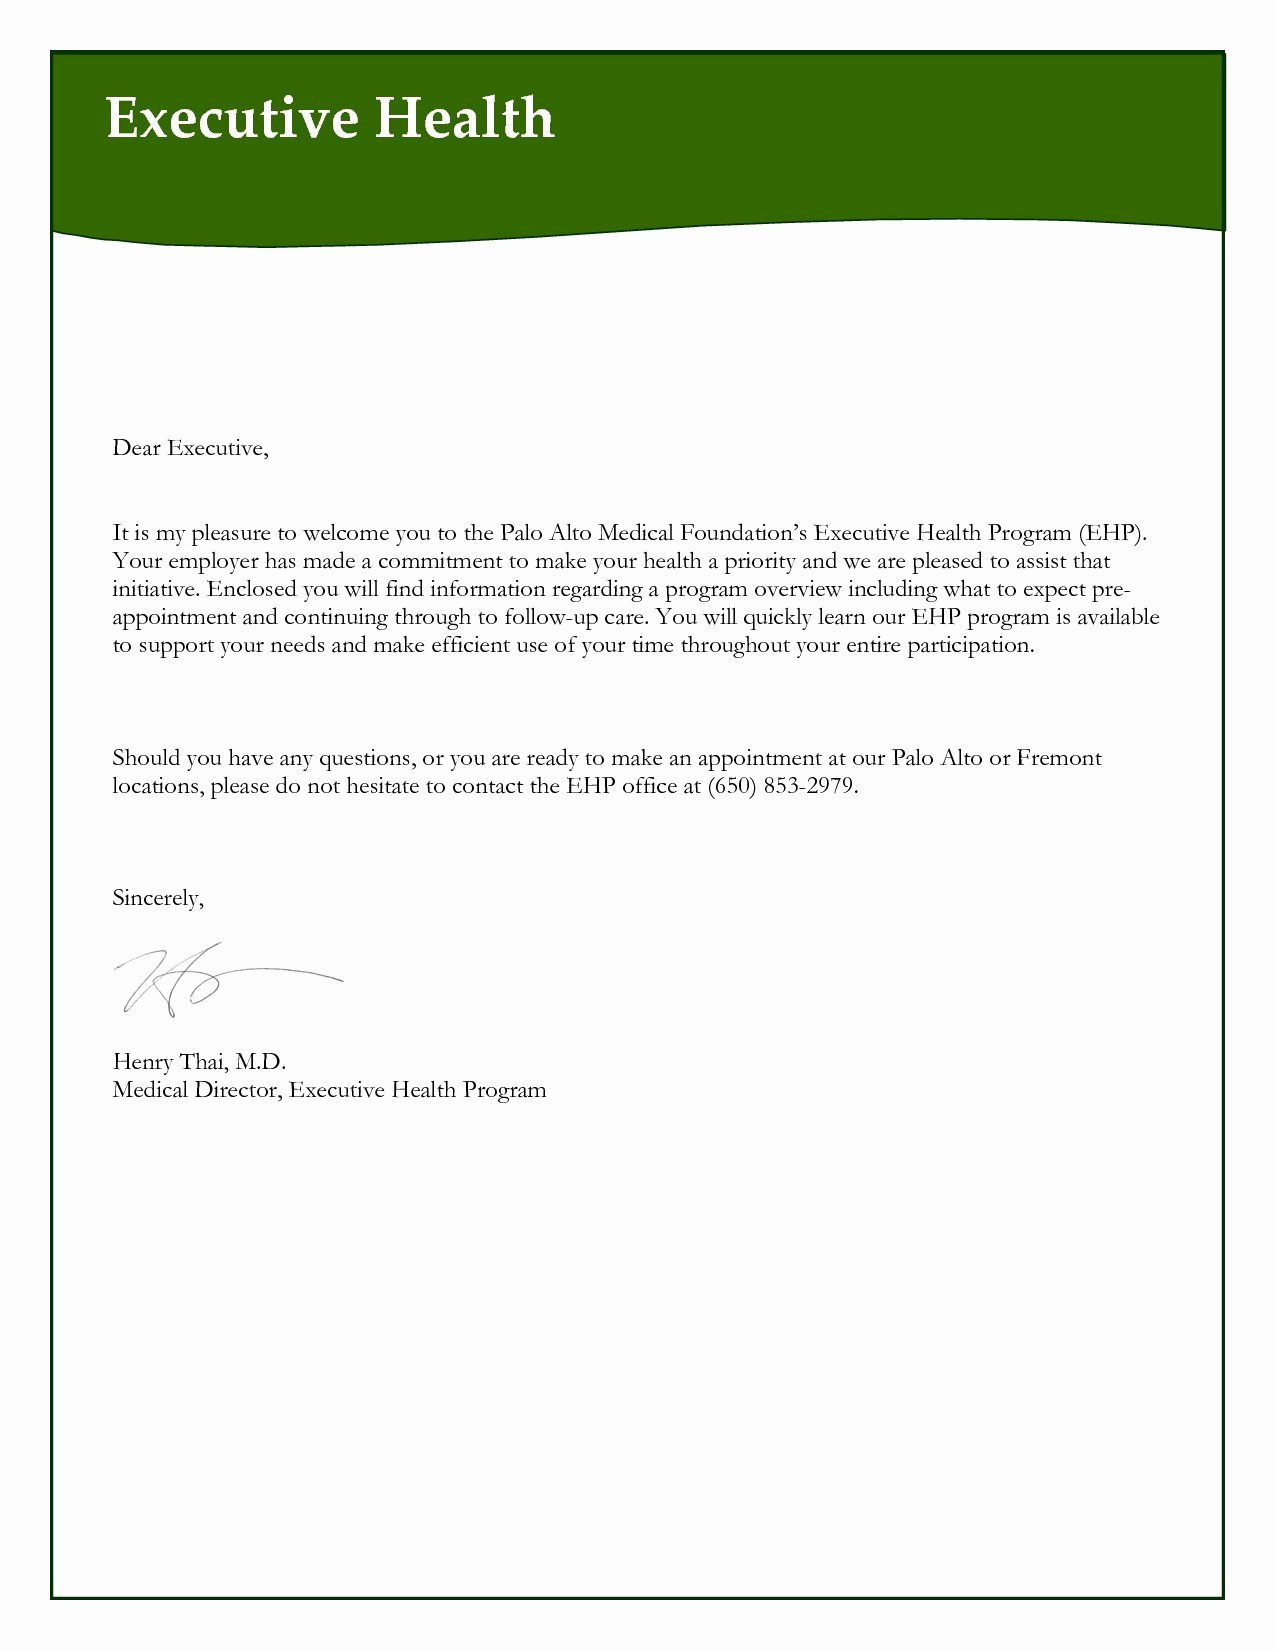 Patient Missed Appointment Letter Template New Appointment Reminder Letter Template Medical Examples